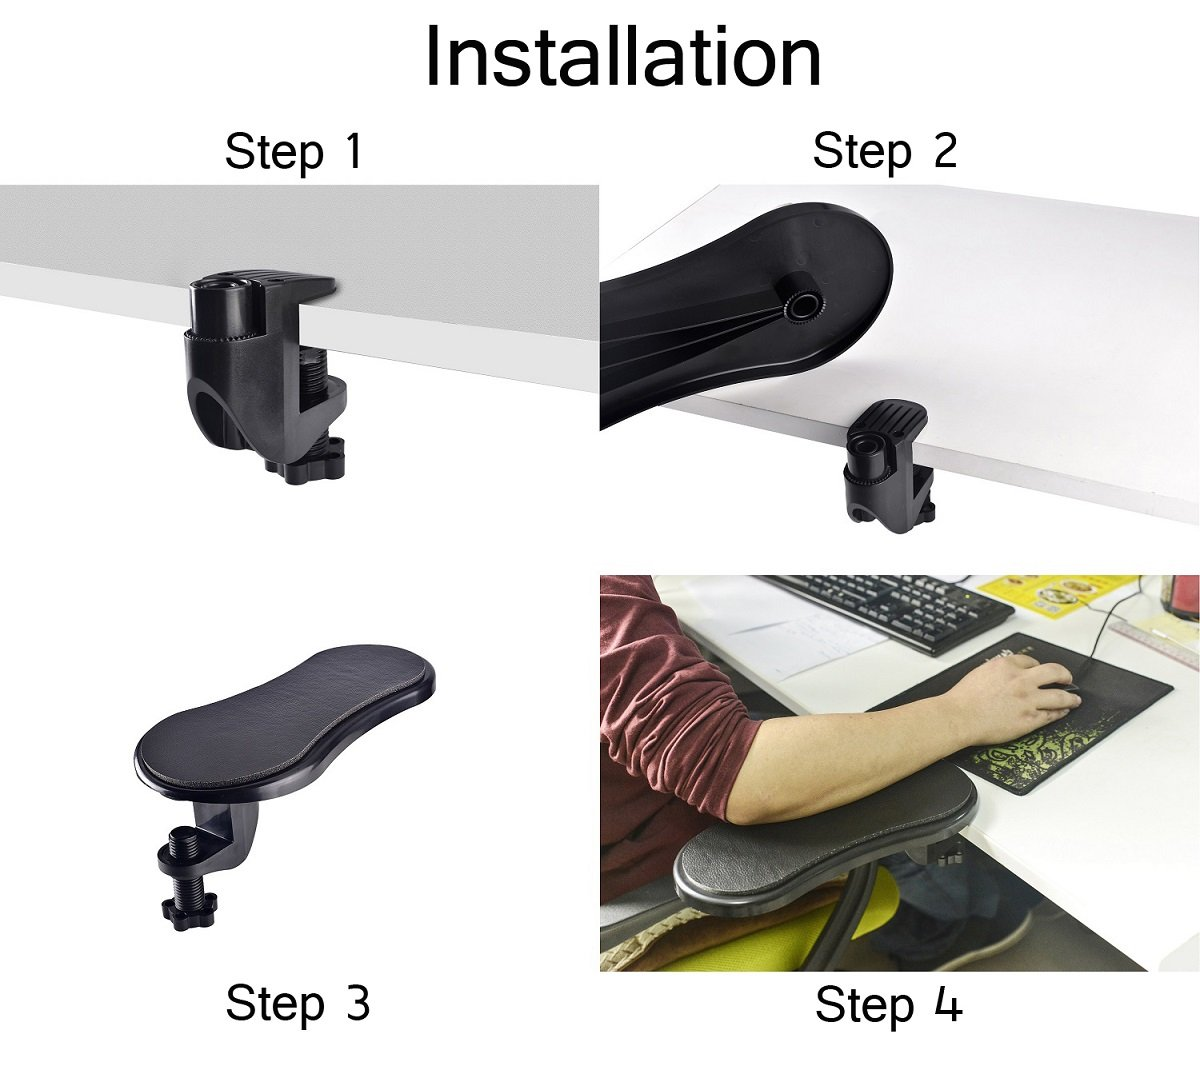 Ergonomic Adjustable PC Wrist Rest Extender Desk Attachable Home Office Mouse Pad Health Care Arm Support Rotating Computer Arm Rest Pad